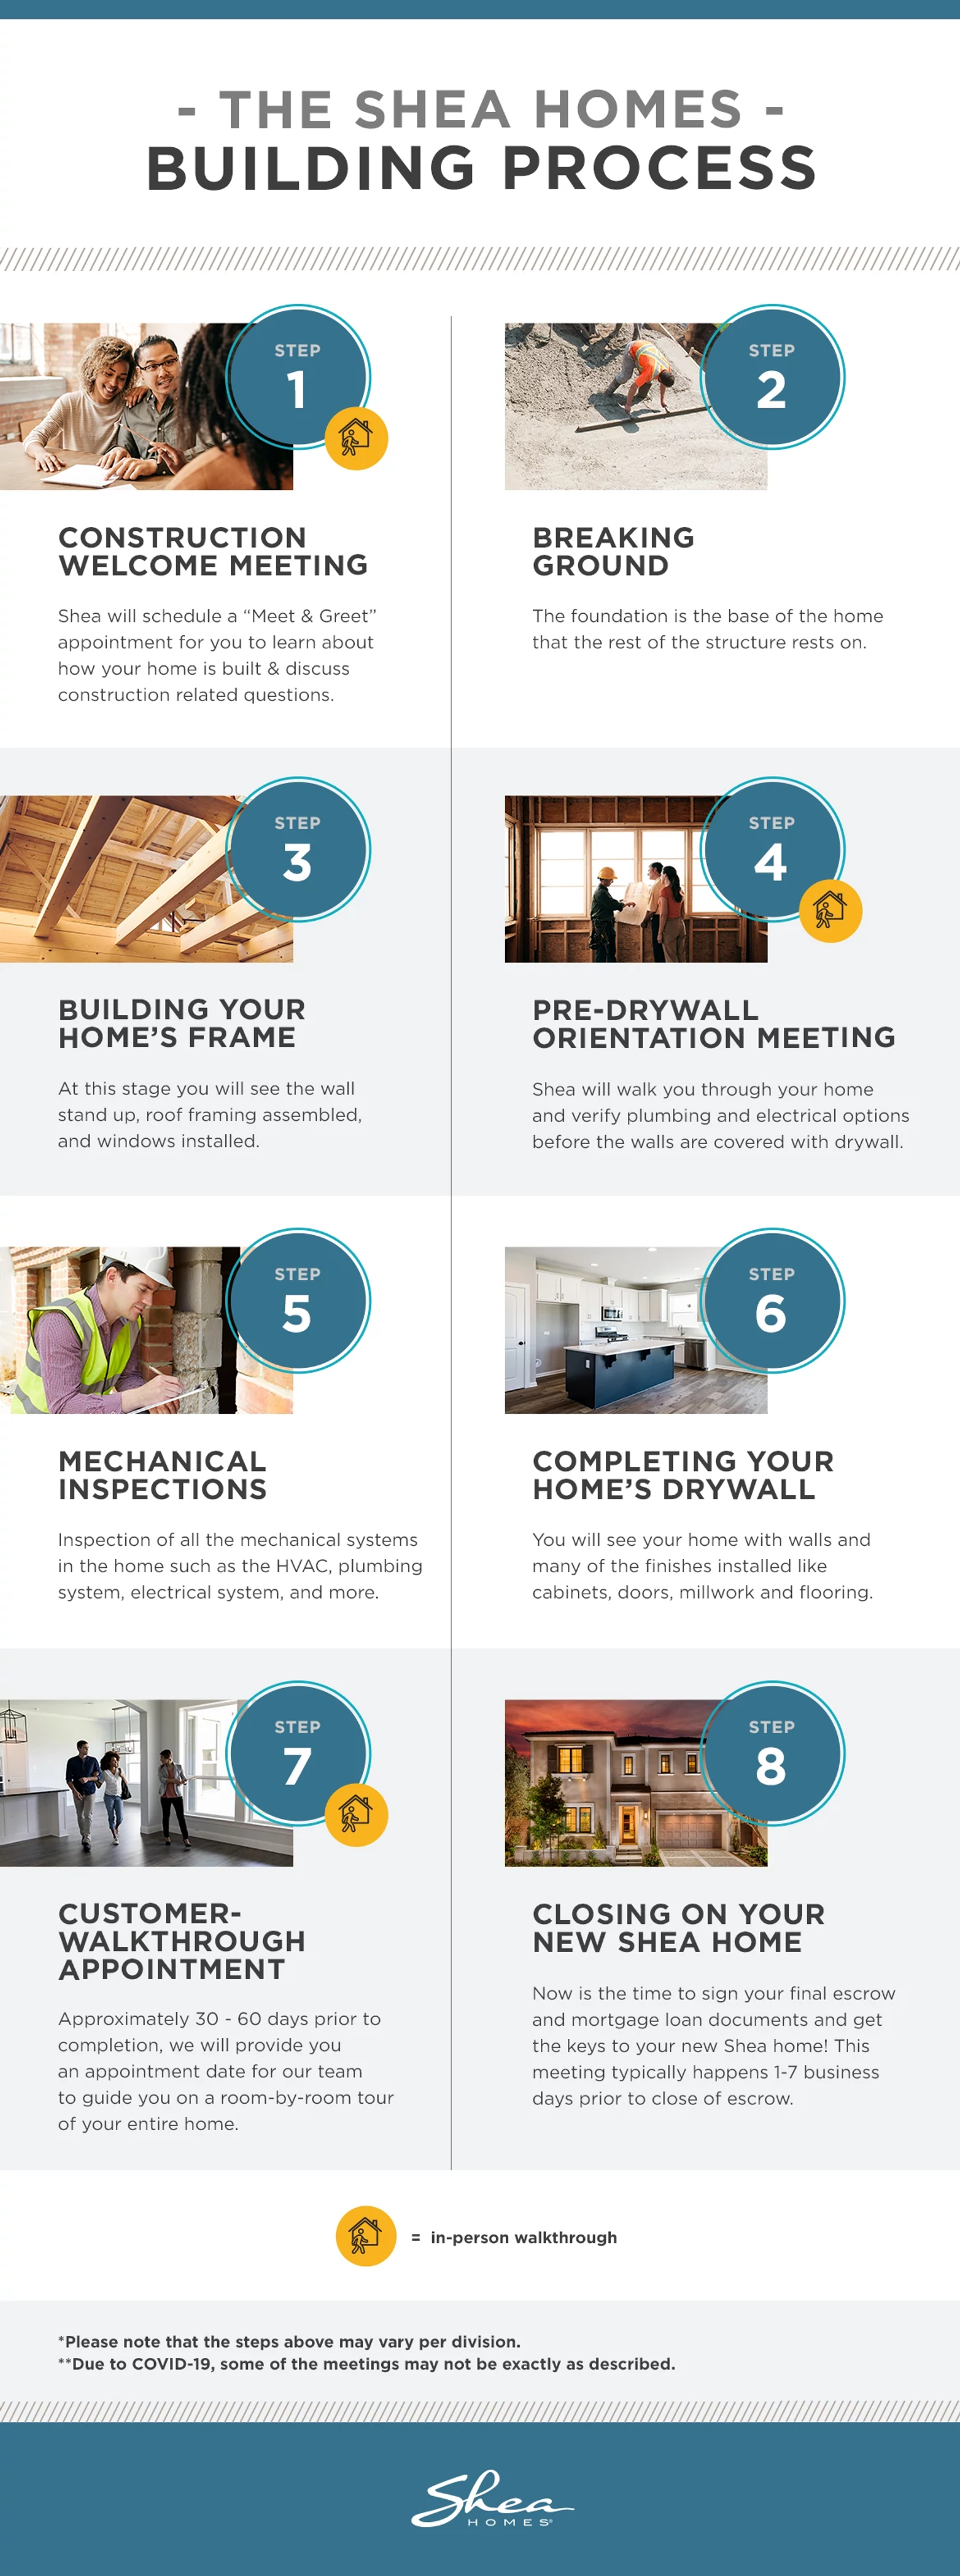 SHEA2037-NewHomeBuildingProcess-Infographic-R1.png